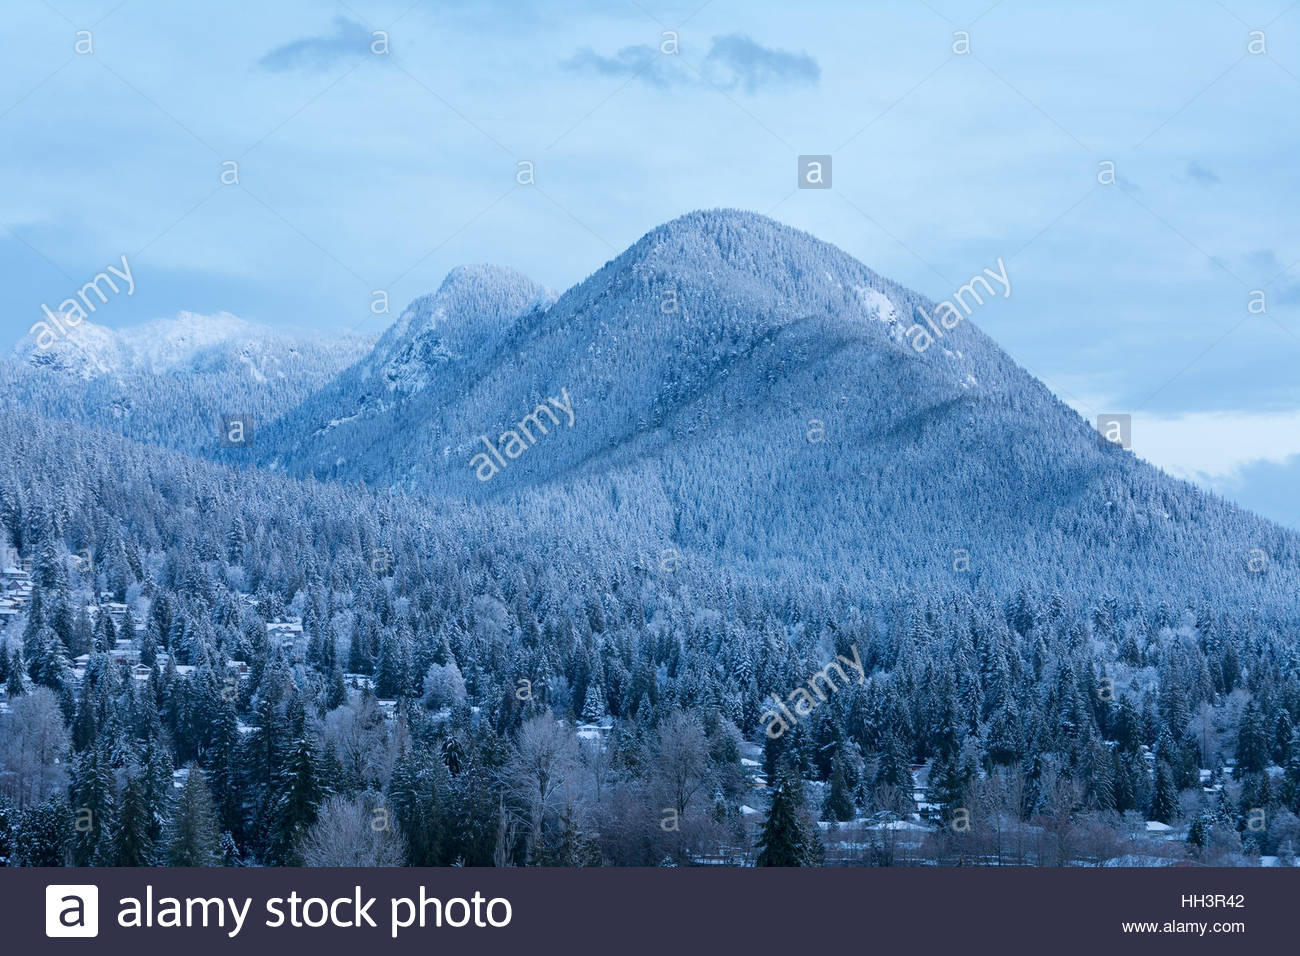 View of Lynn Peak, surrounding trees, and homes of Lynn Valley dusted with snow as seen at twilight, shortly before - Stock Image